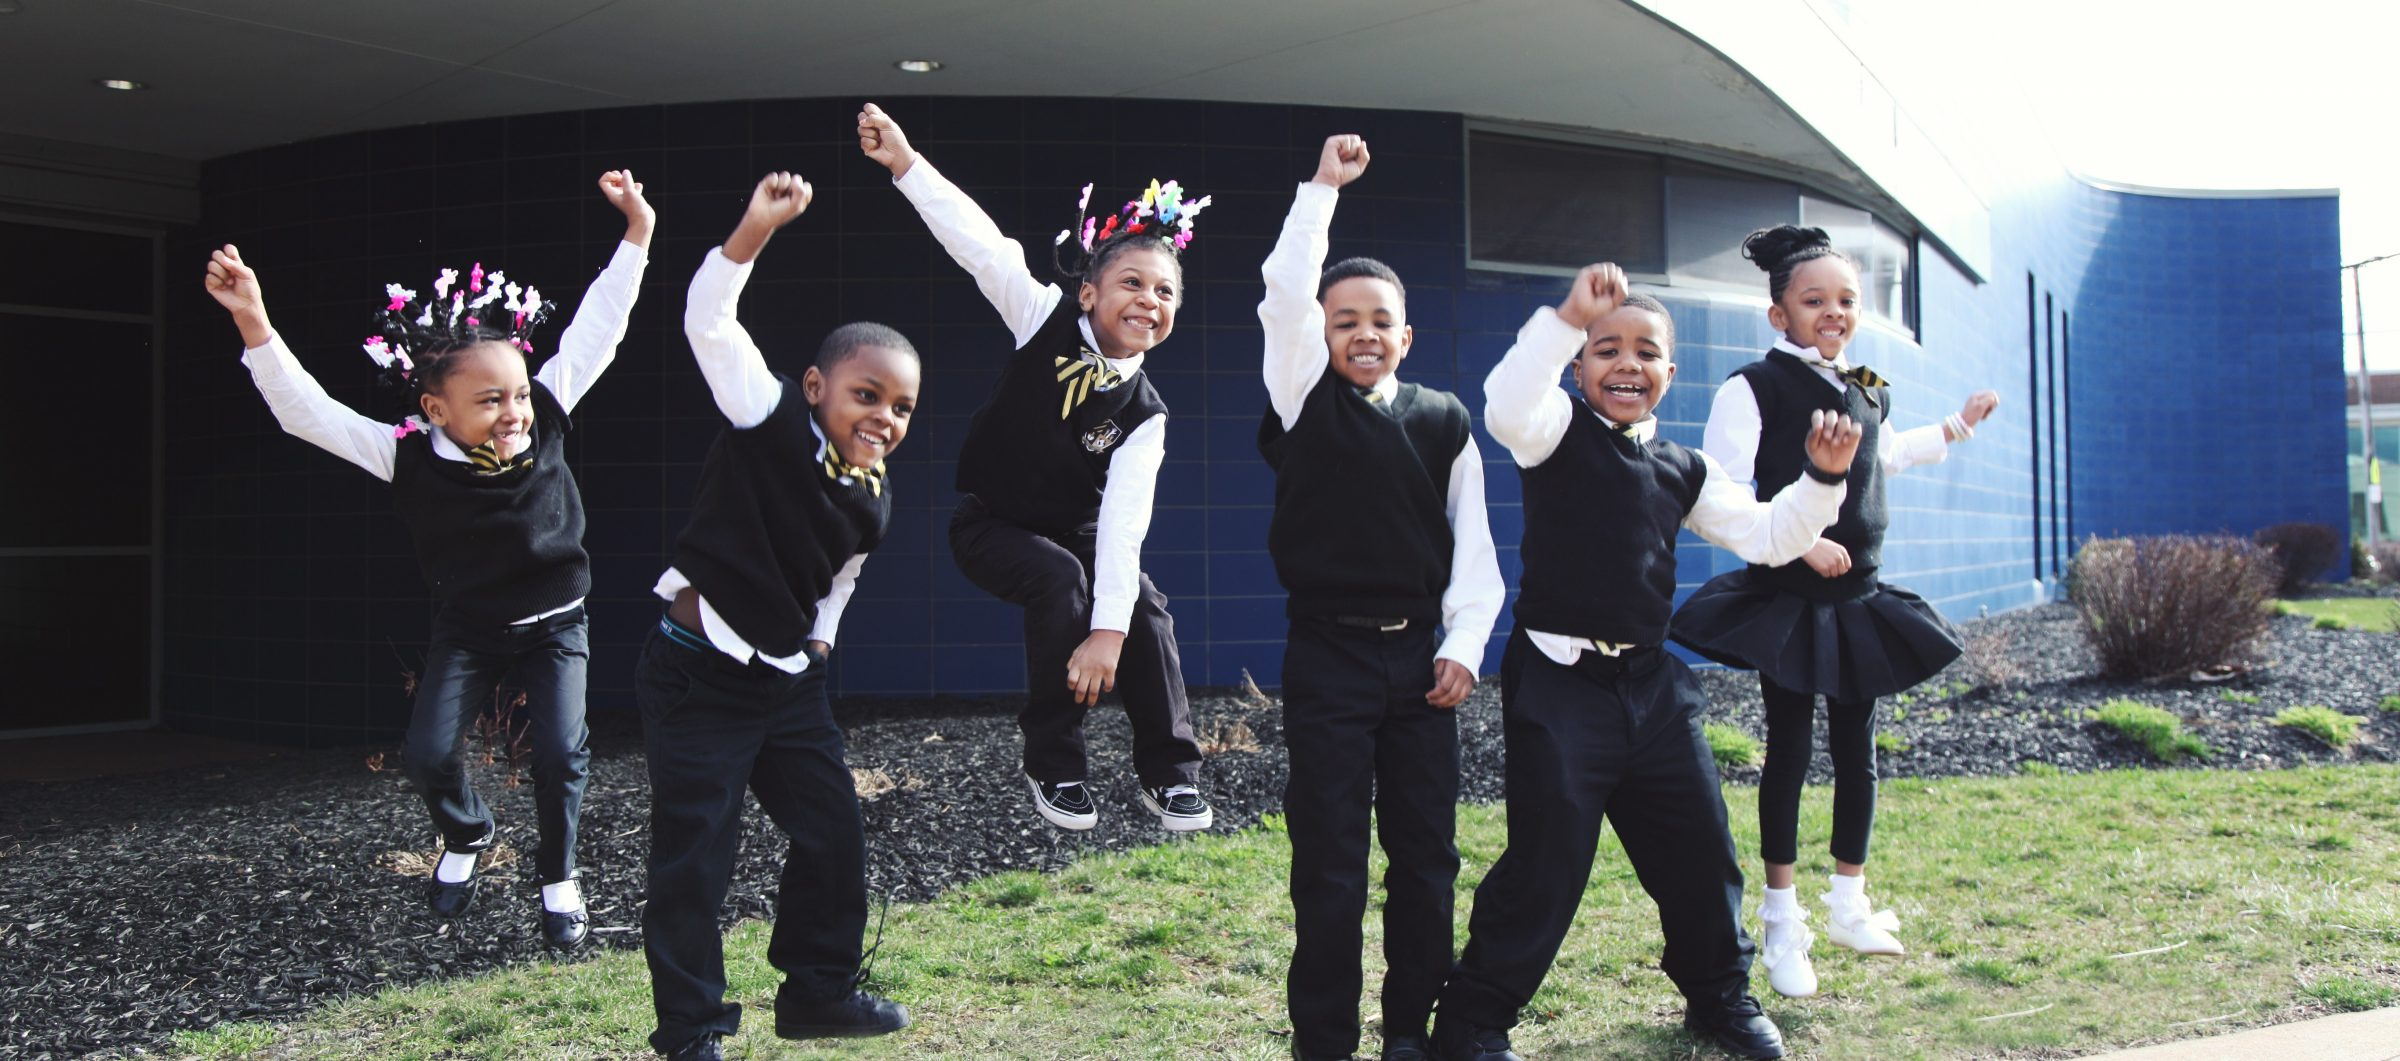 Young elementary students in uniform jumping and smiling outside.